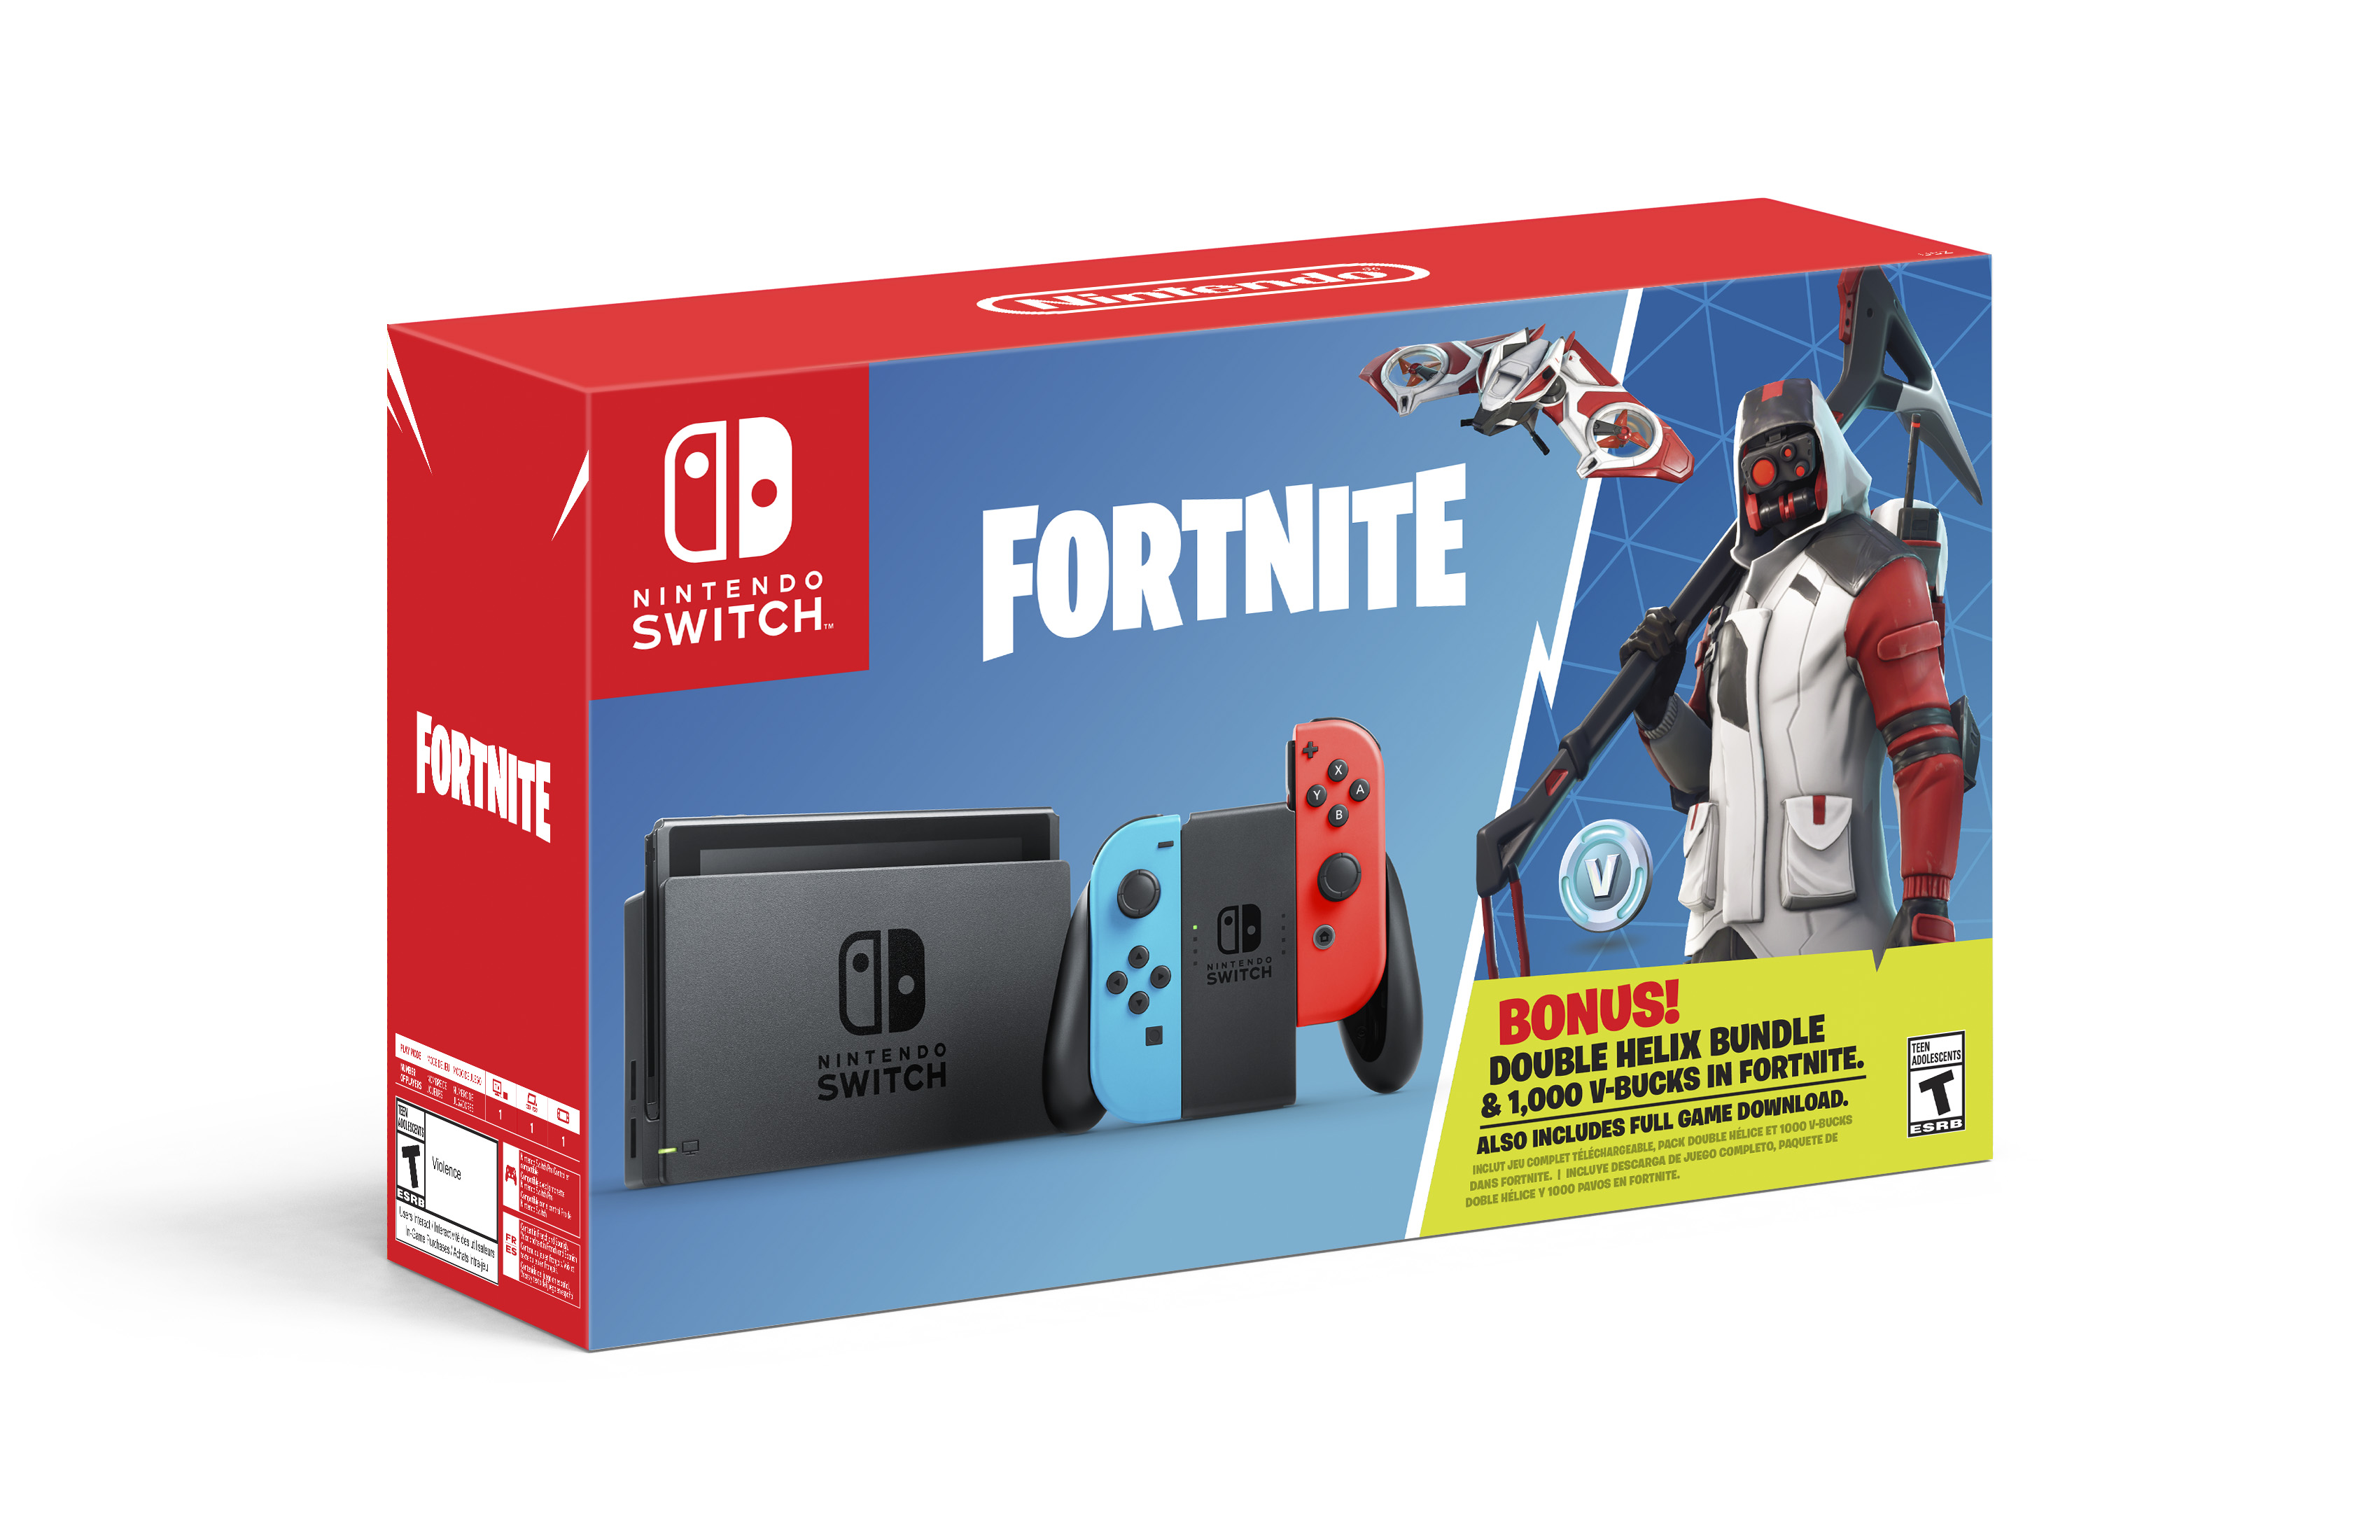 Nintendo Unveils Fortnite-themed Switch Bundle | Fortune